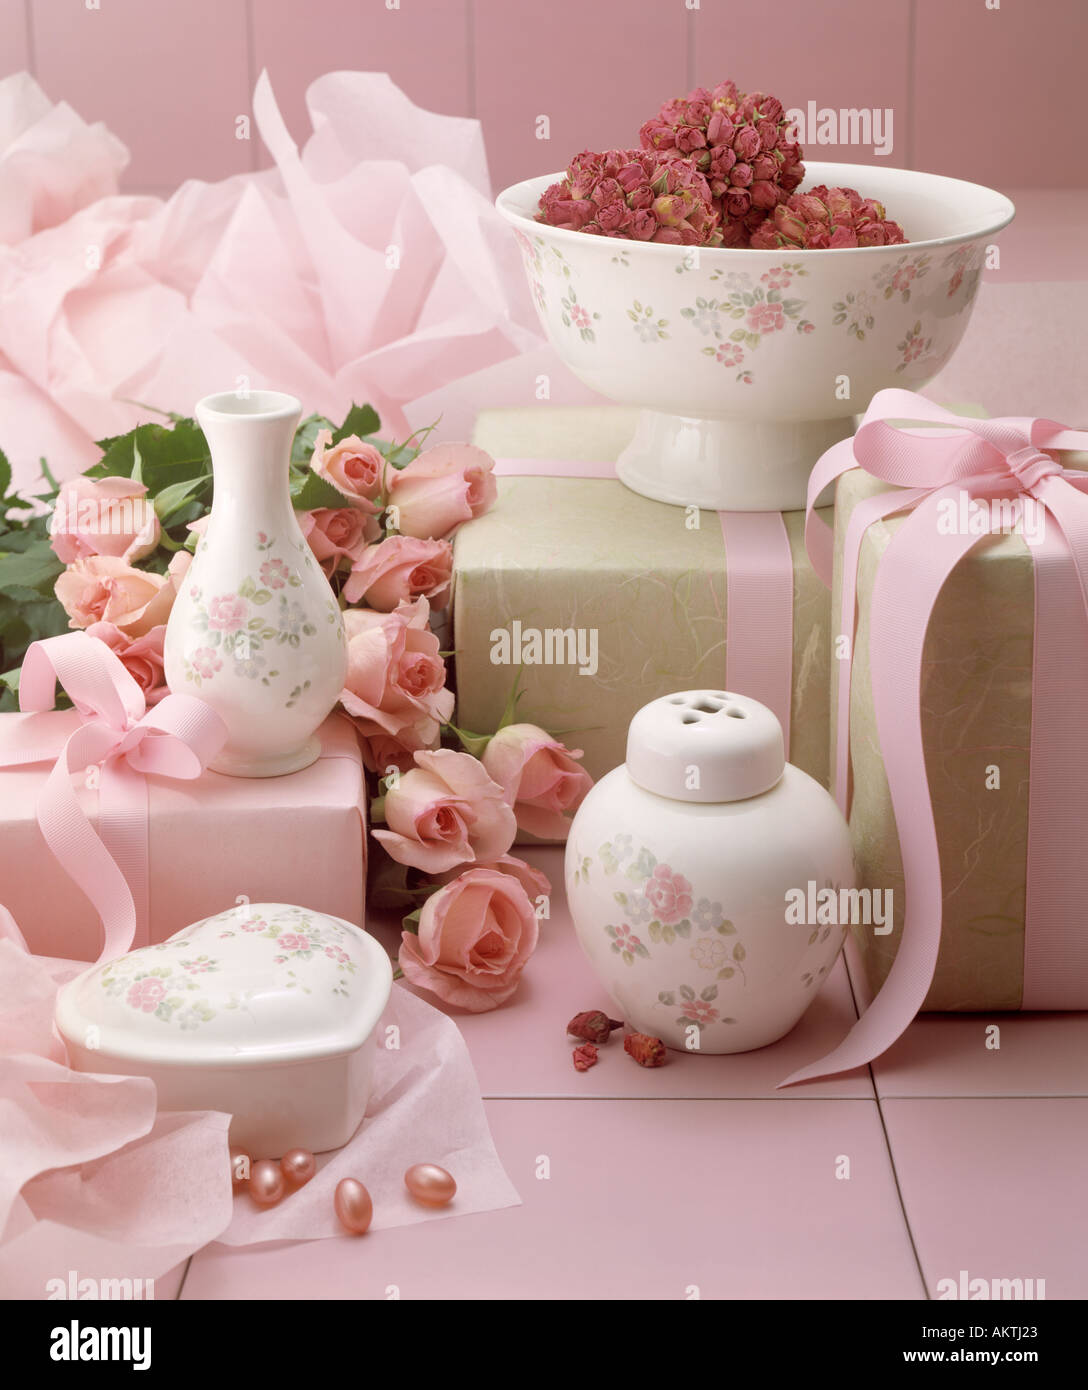 Bathroom Home Decorative Accessories Pink Tile Roses Pot